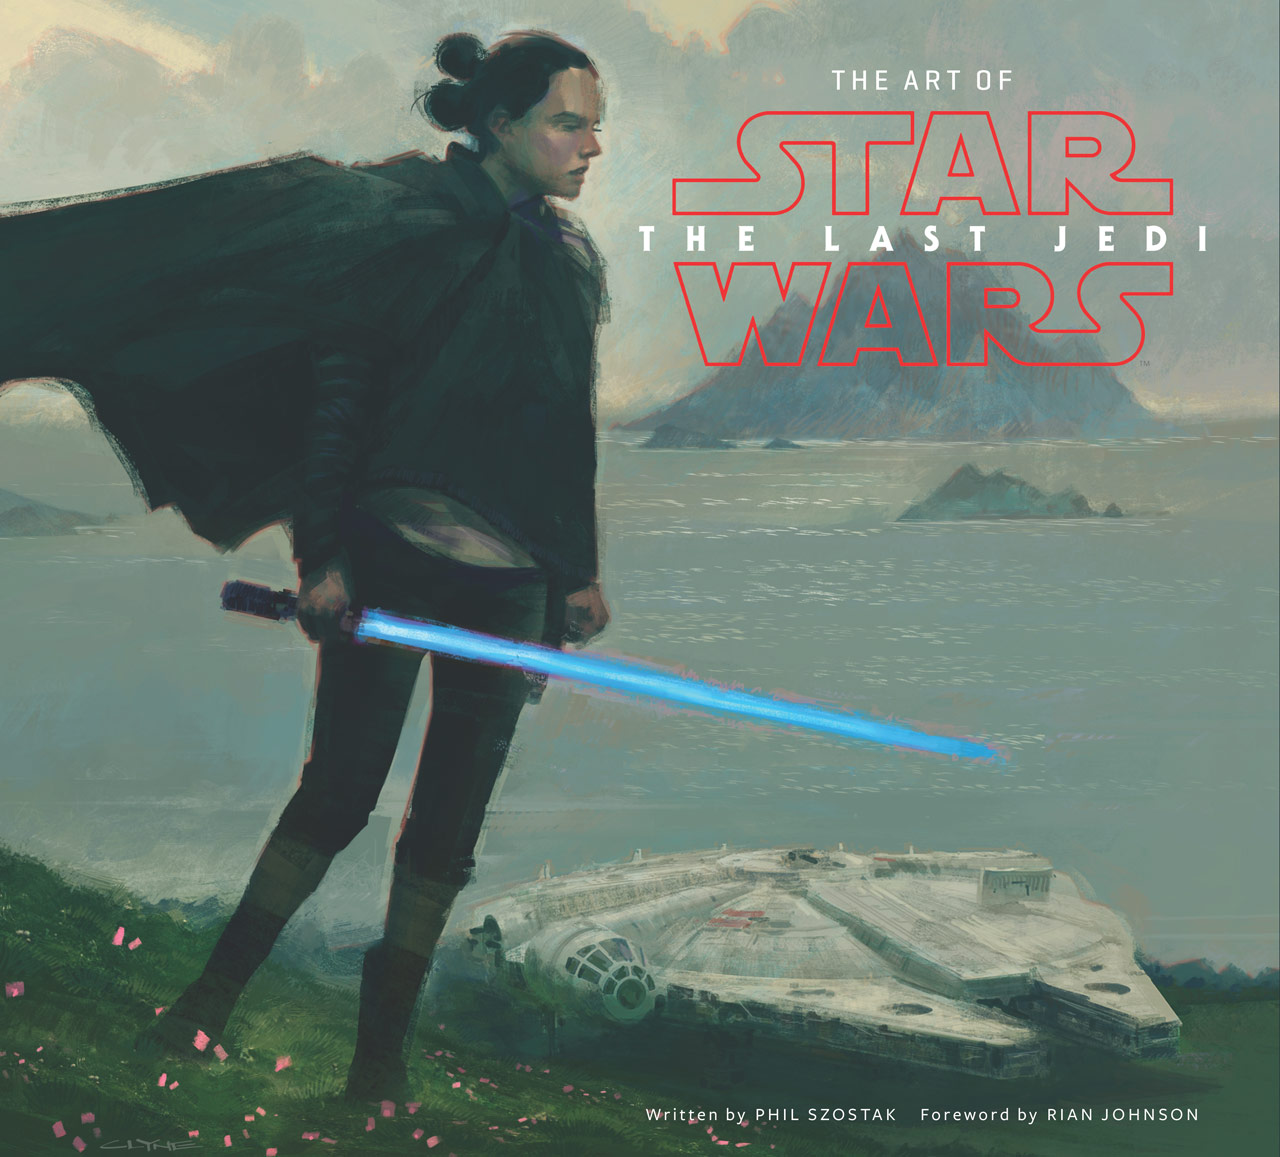 The Art of Star Wars The Last Jedi